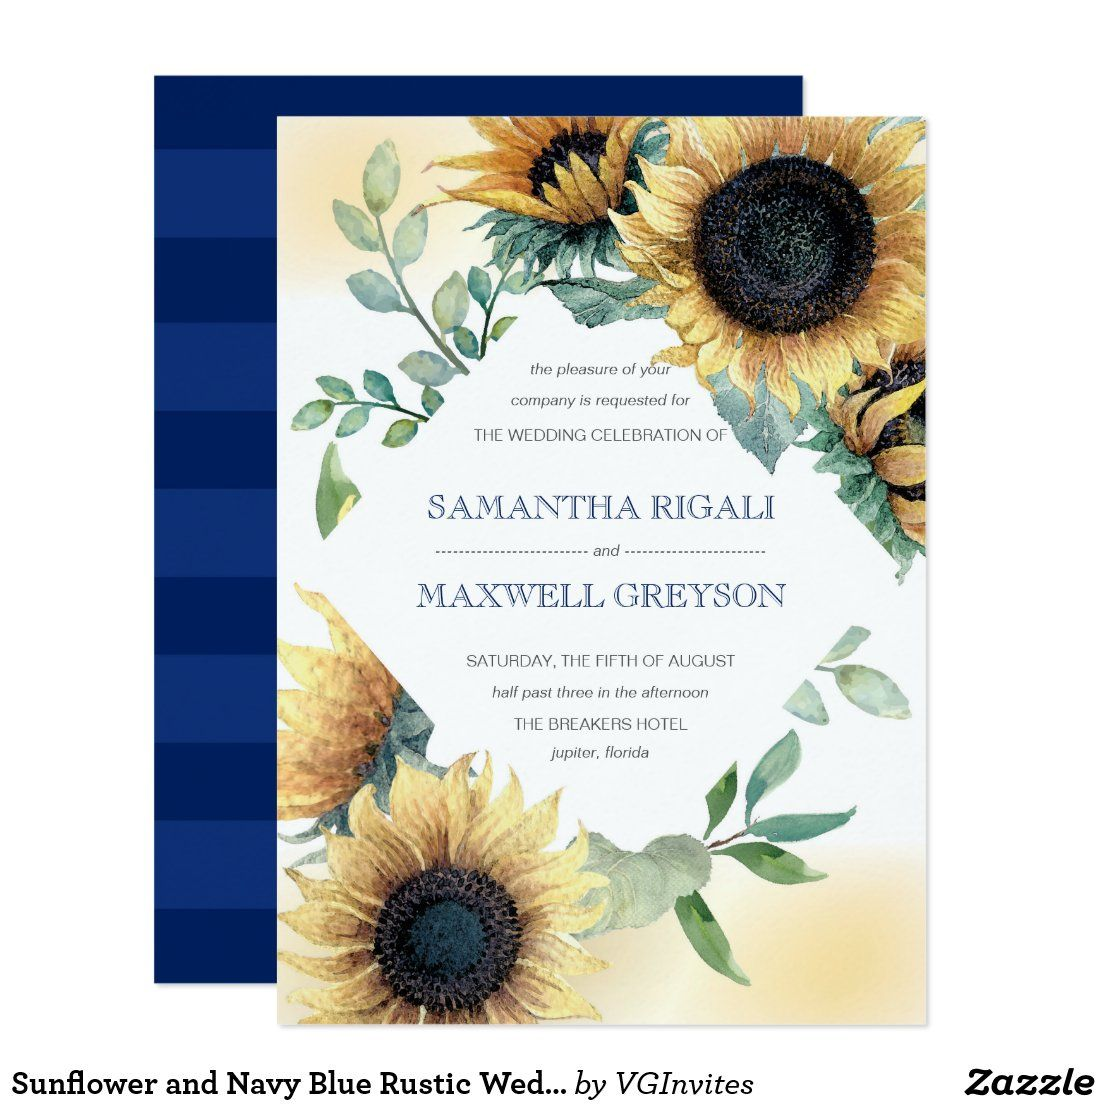 Sunflower and Navy Blue Rustic Wedding Invite